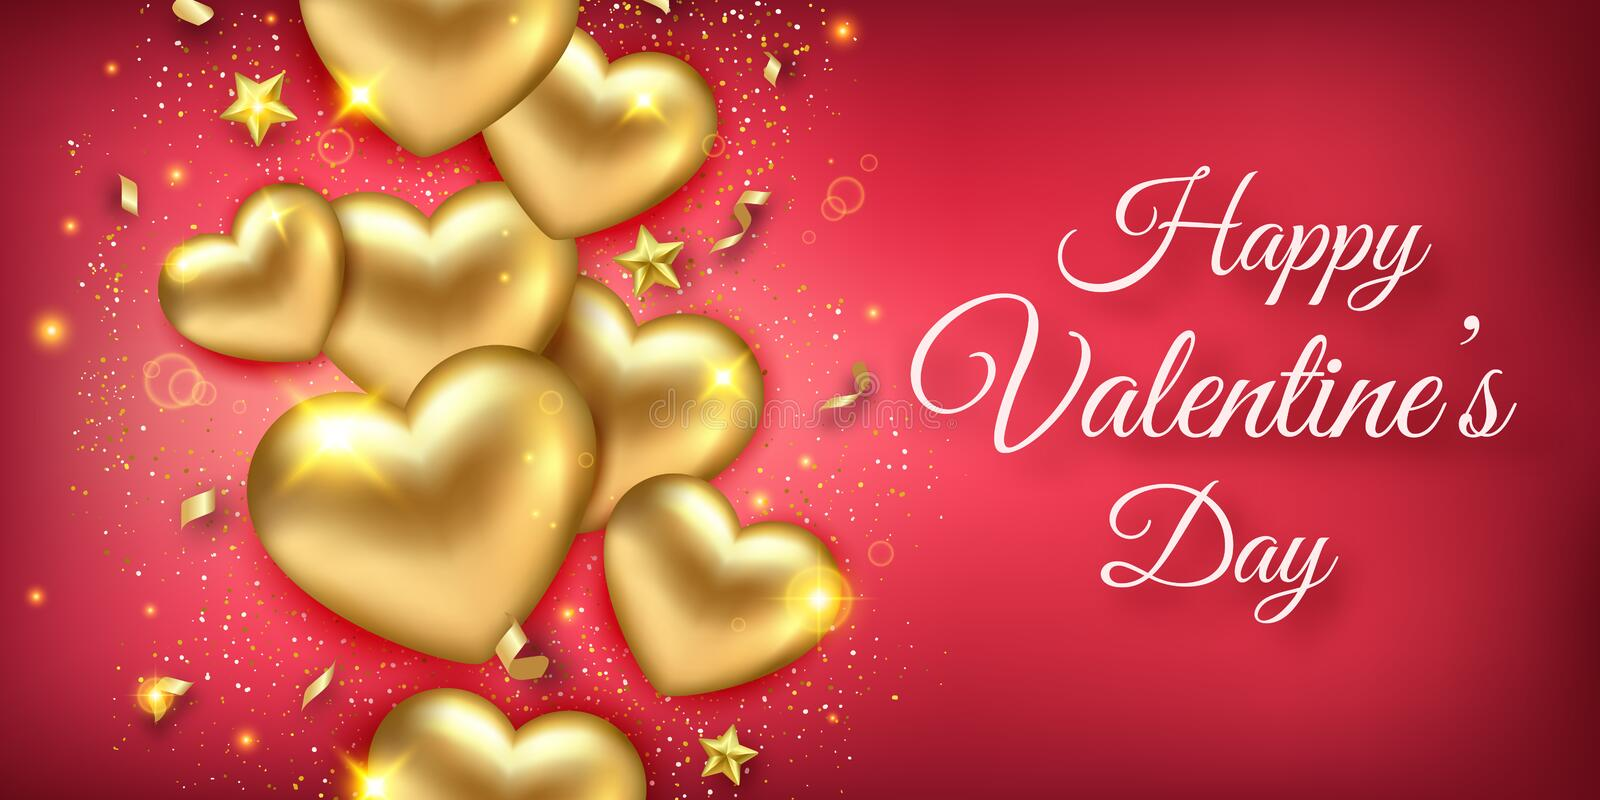 Valentines Day horizontal banner with shining golden hearts, ribbons, stars and confetti. Holiday card illustration on stock illustration